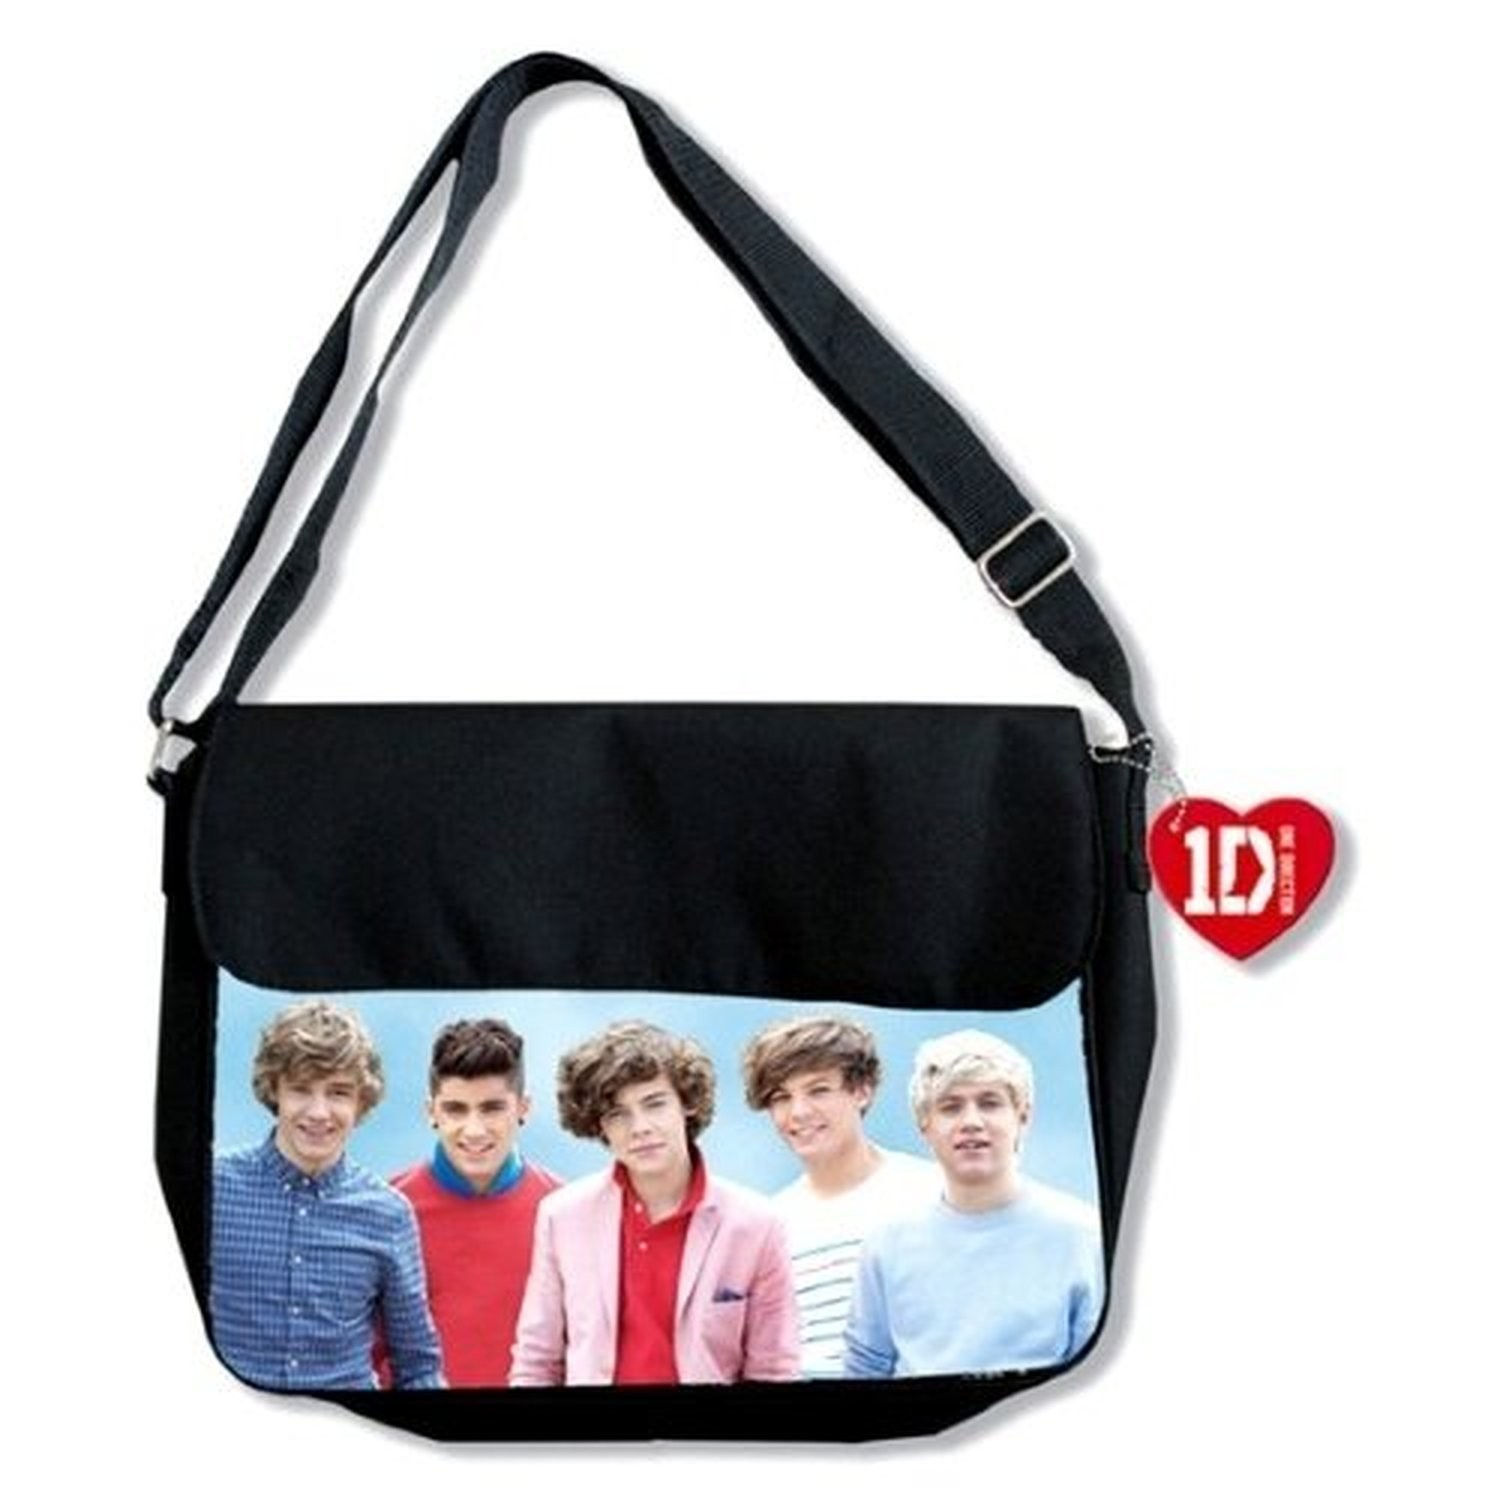 1D One Direction Early Days Messenger Black Bag Red Heart Tag Satchel Official